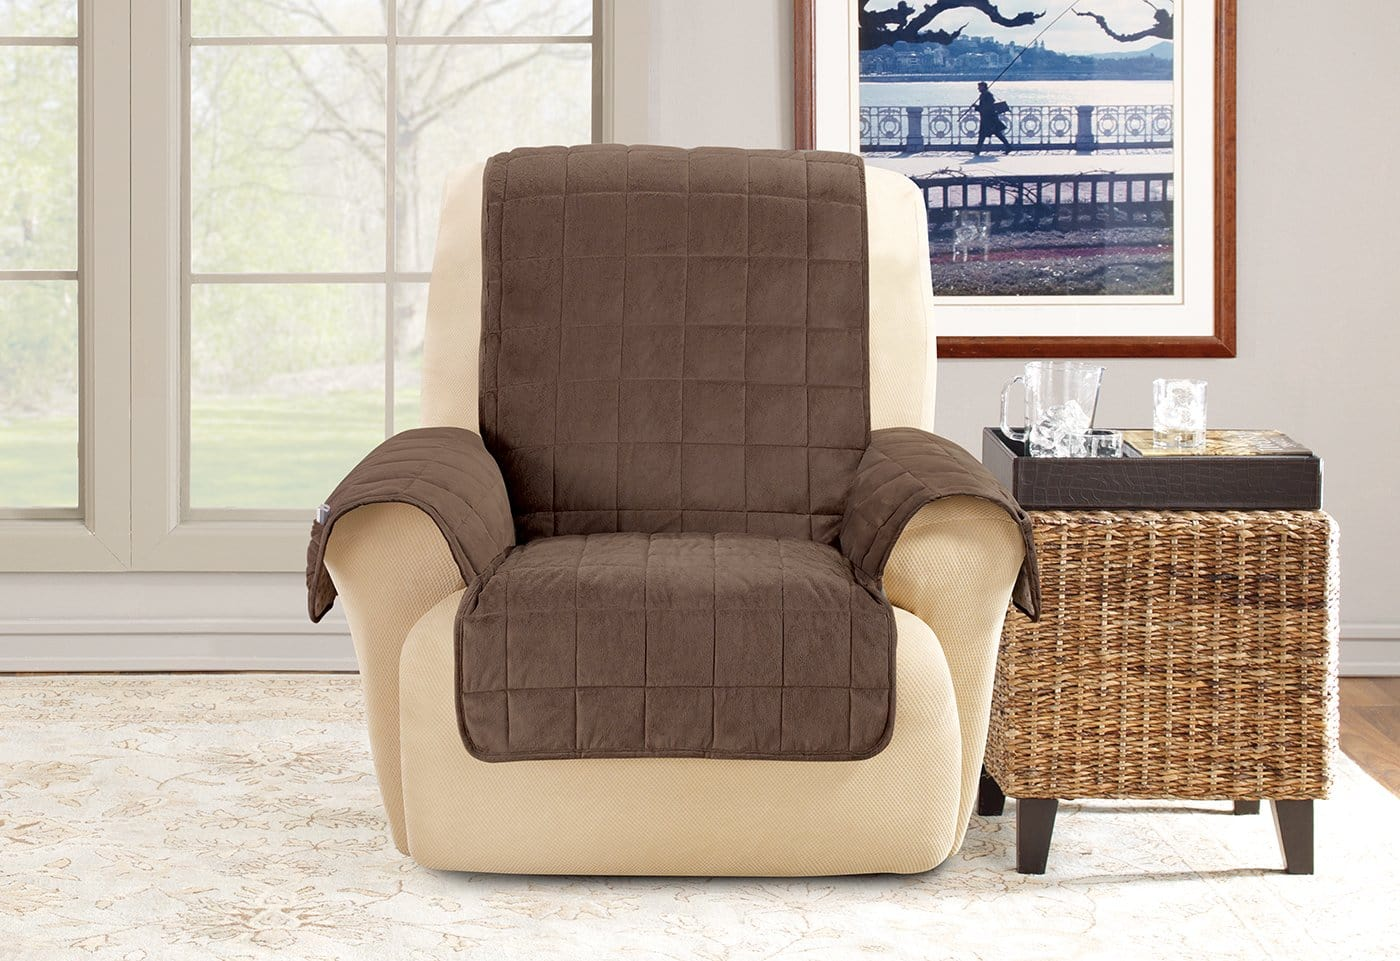 Deep Pile Velvet Recliner Furniture Cover 100% Polyester Pet Furniture Cover Machine Washable - Recliner / Chocolate